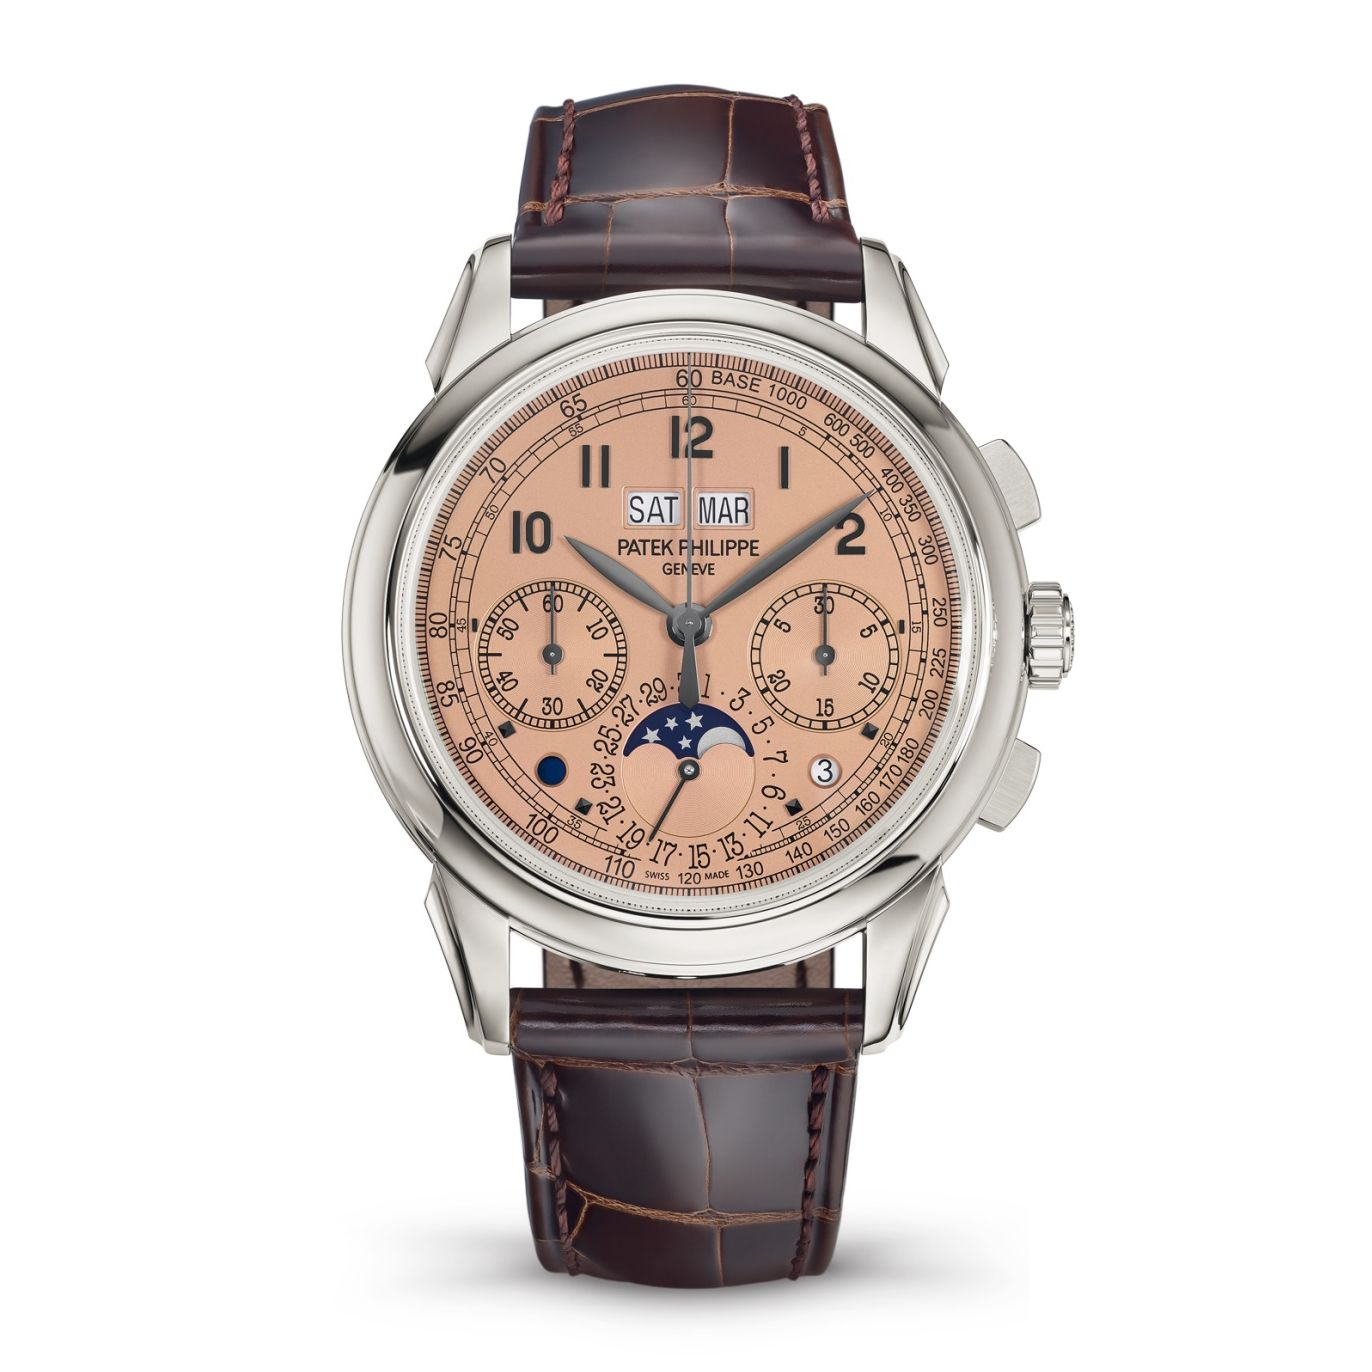 Patek Philippe Perpetual Calendar Chronograph With Salmon Dial 5270P-001